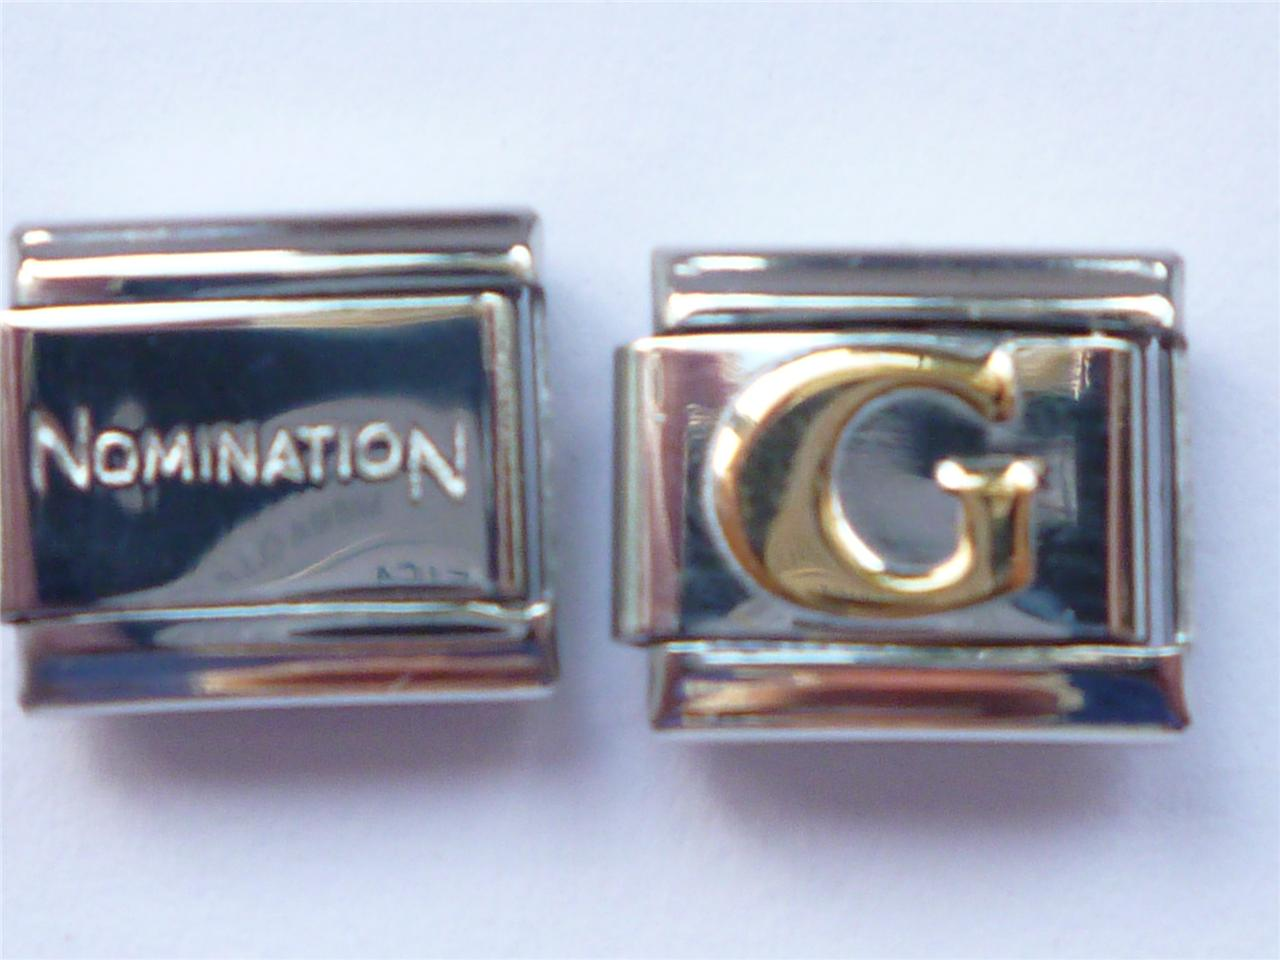 genuine shiny nomination classic italian charm unbranded